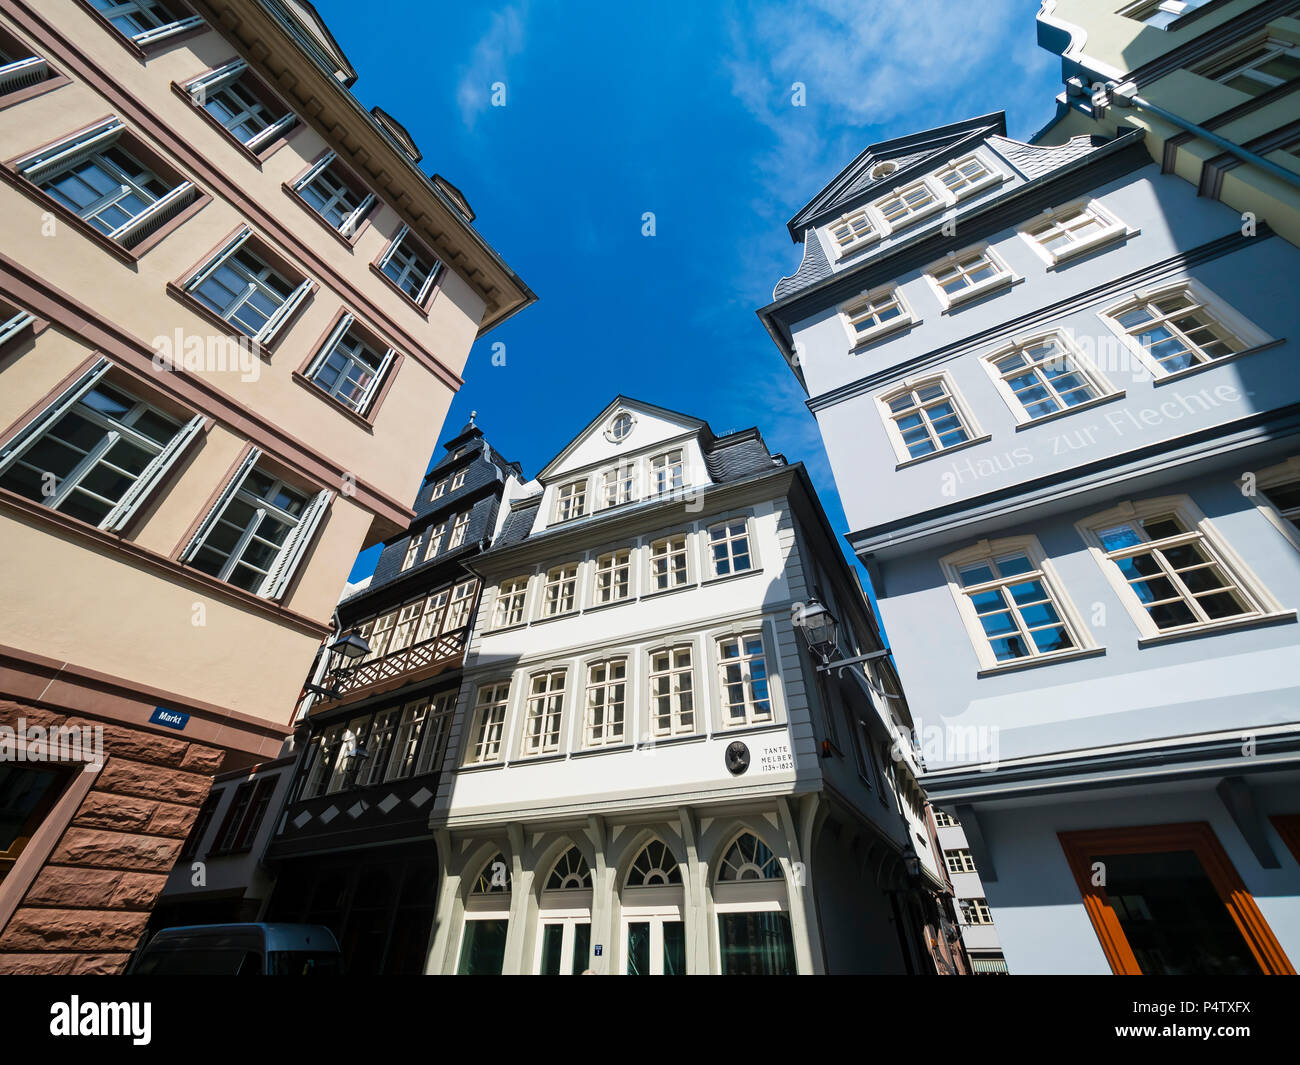 Germany, Hesse, Frankfurt, Old town, reconstructions of houses - Stock Image